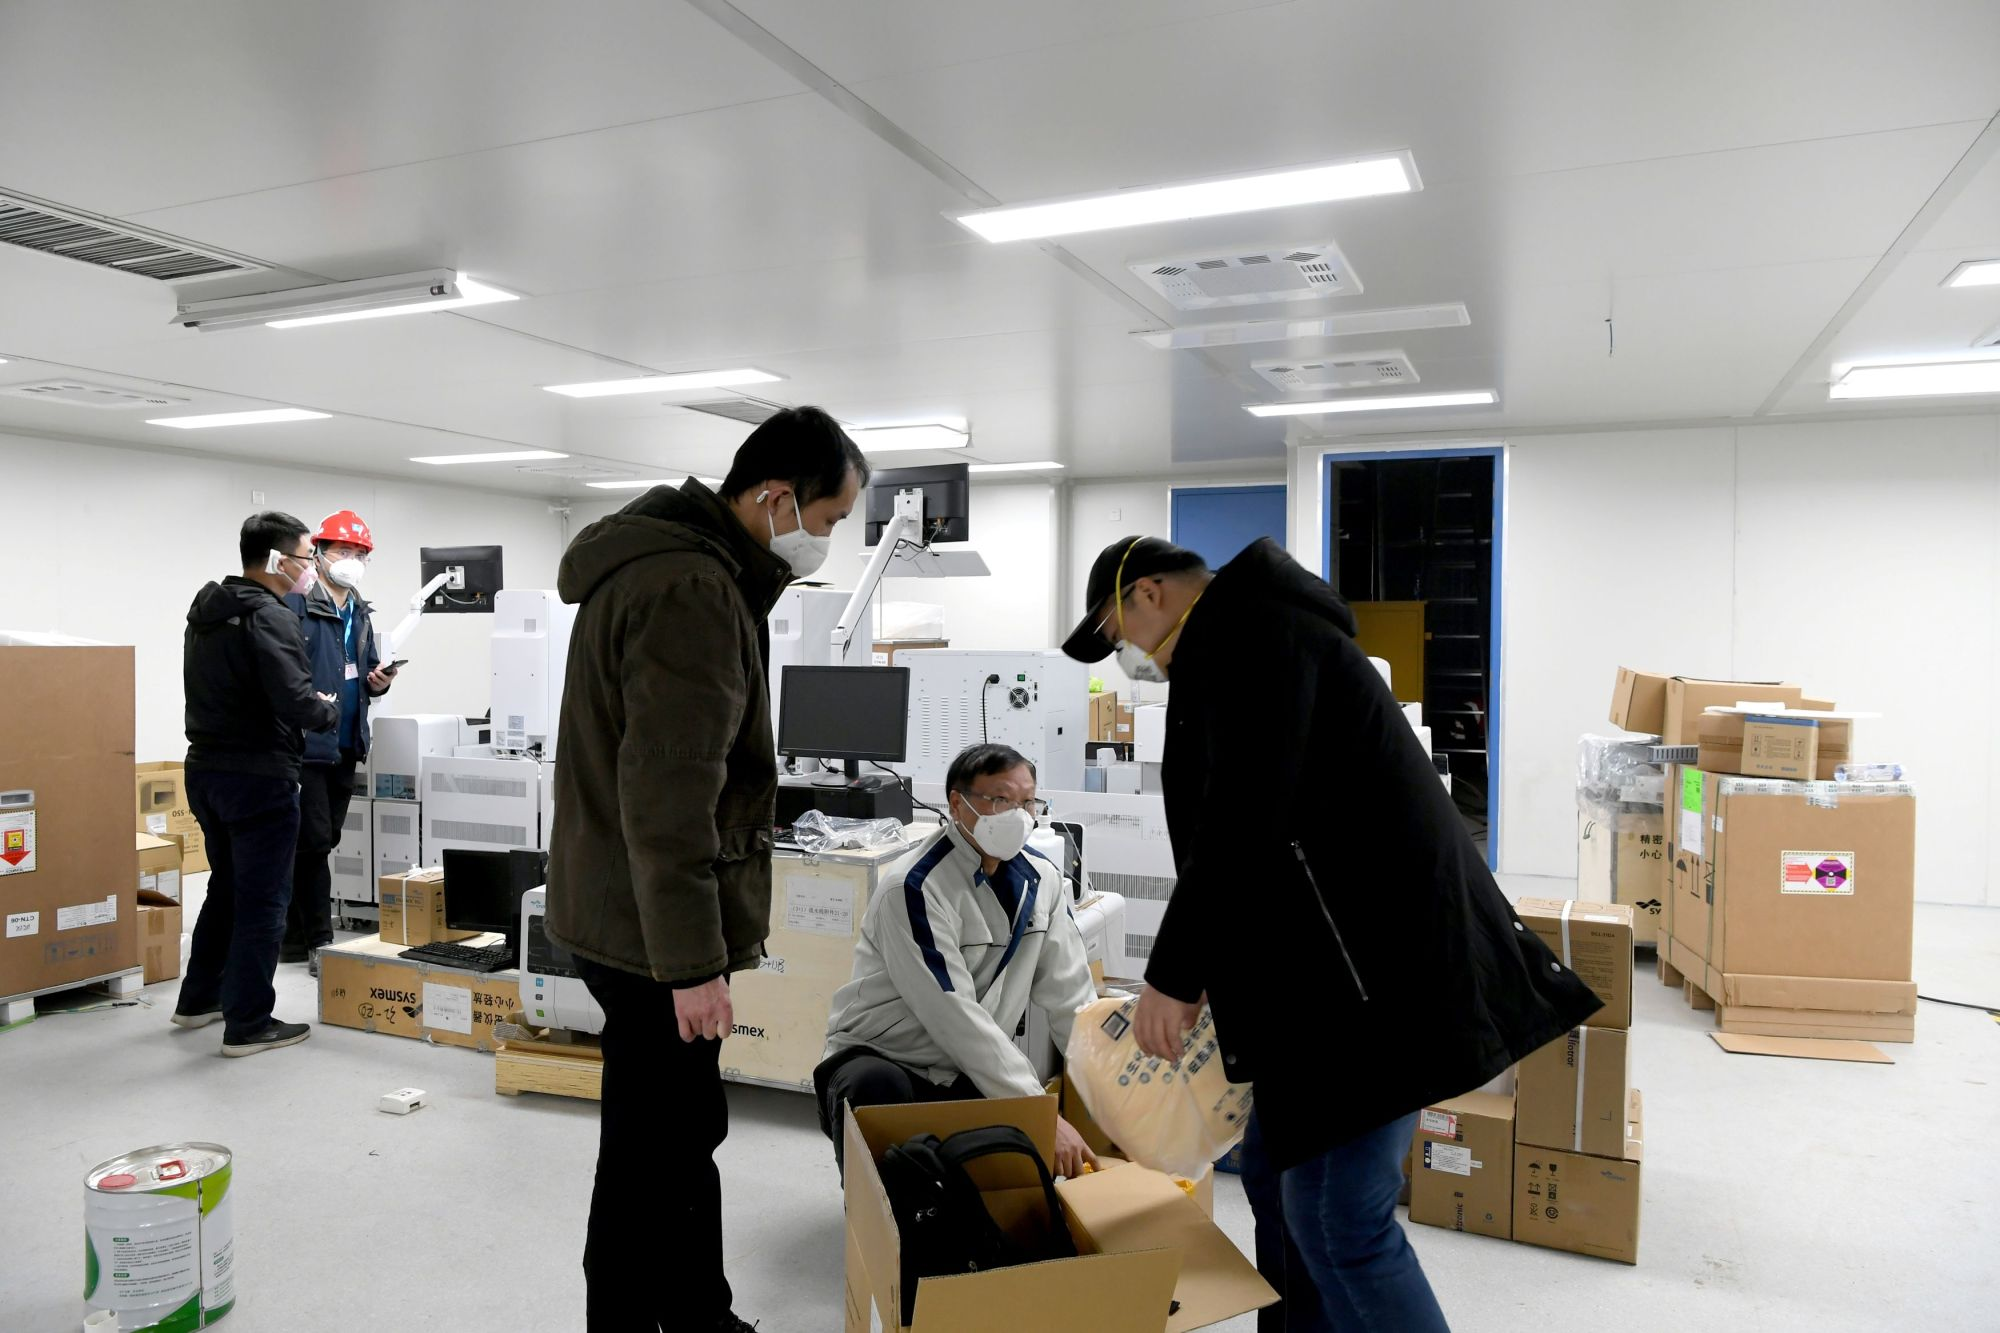 Workers set up medical equipment at the Leishenshan Hospital, a facility for treating patients of the new coronavirus that is under construction, in Wuhan, China, on Wednesday.   REUTERS